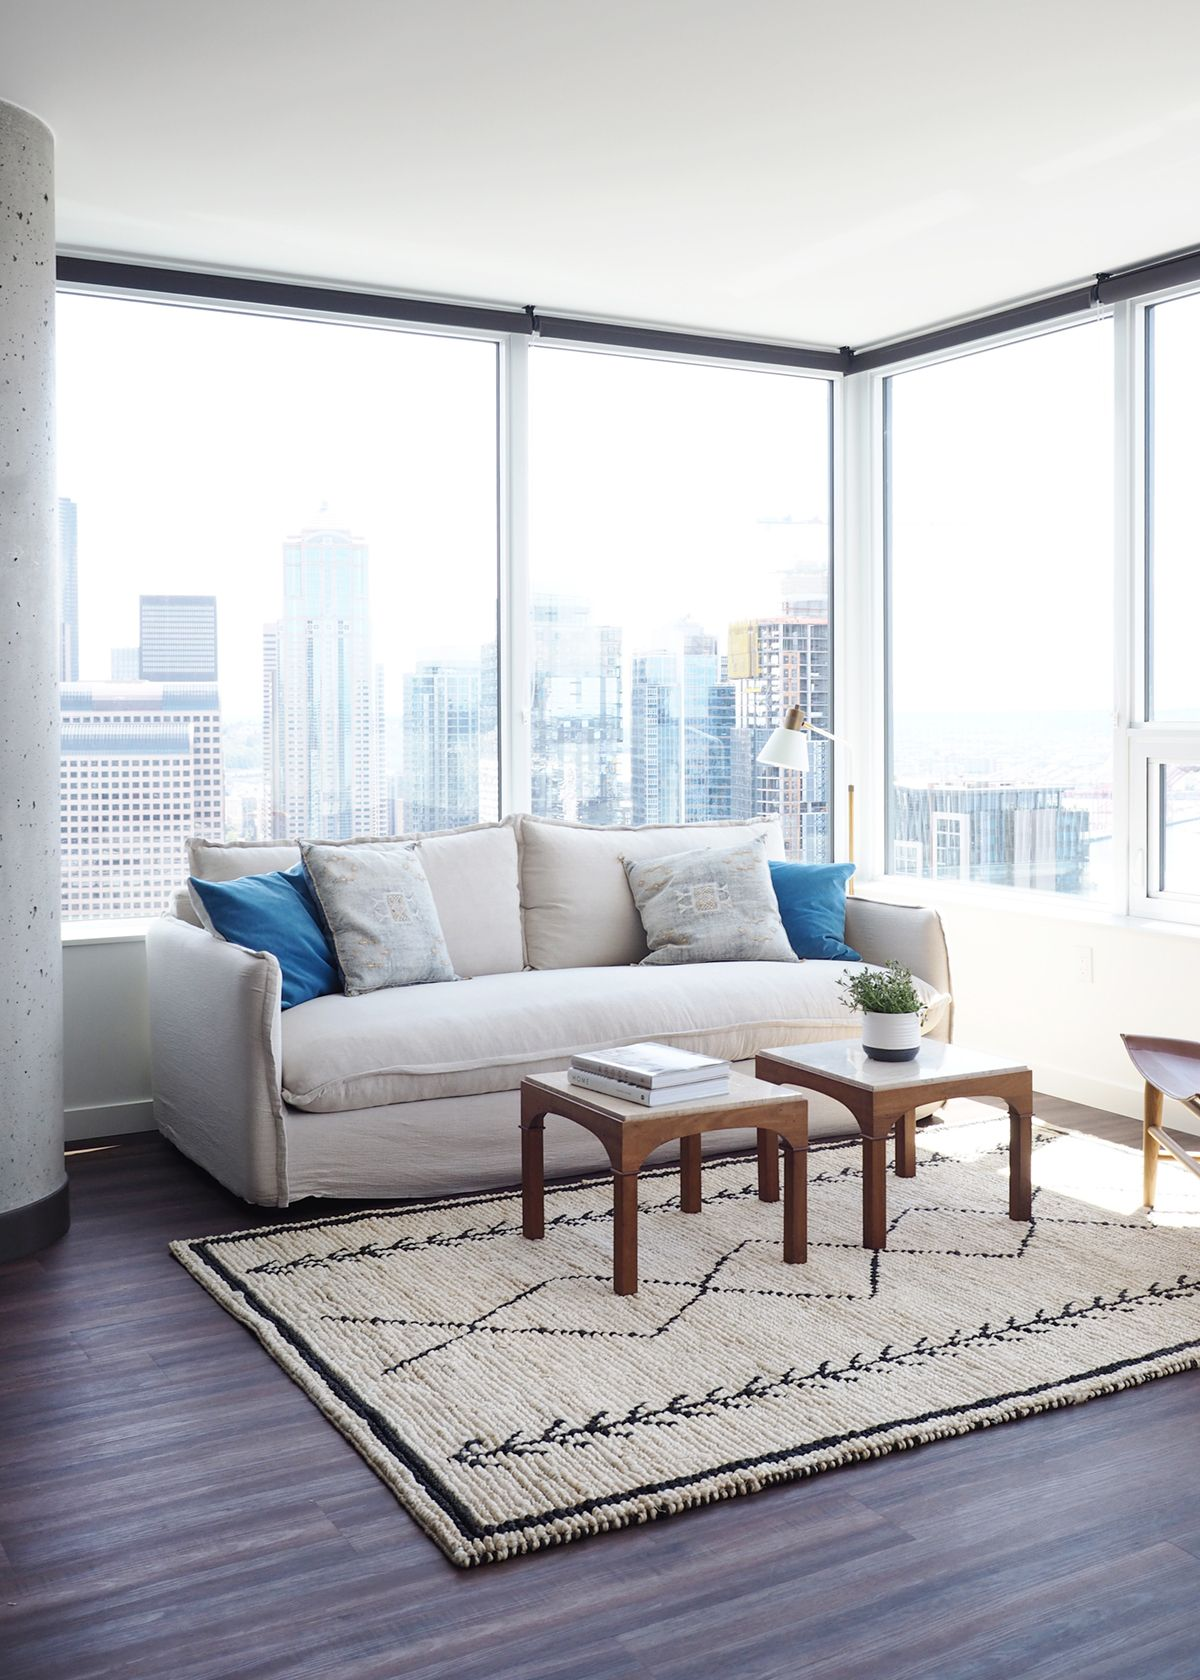 Everything You Need To Know About Our New Seattle Apartment Coco Kelley Seattle Apartment Beach House Decor Living Room Sitting Room Decor